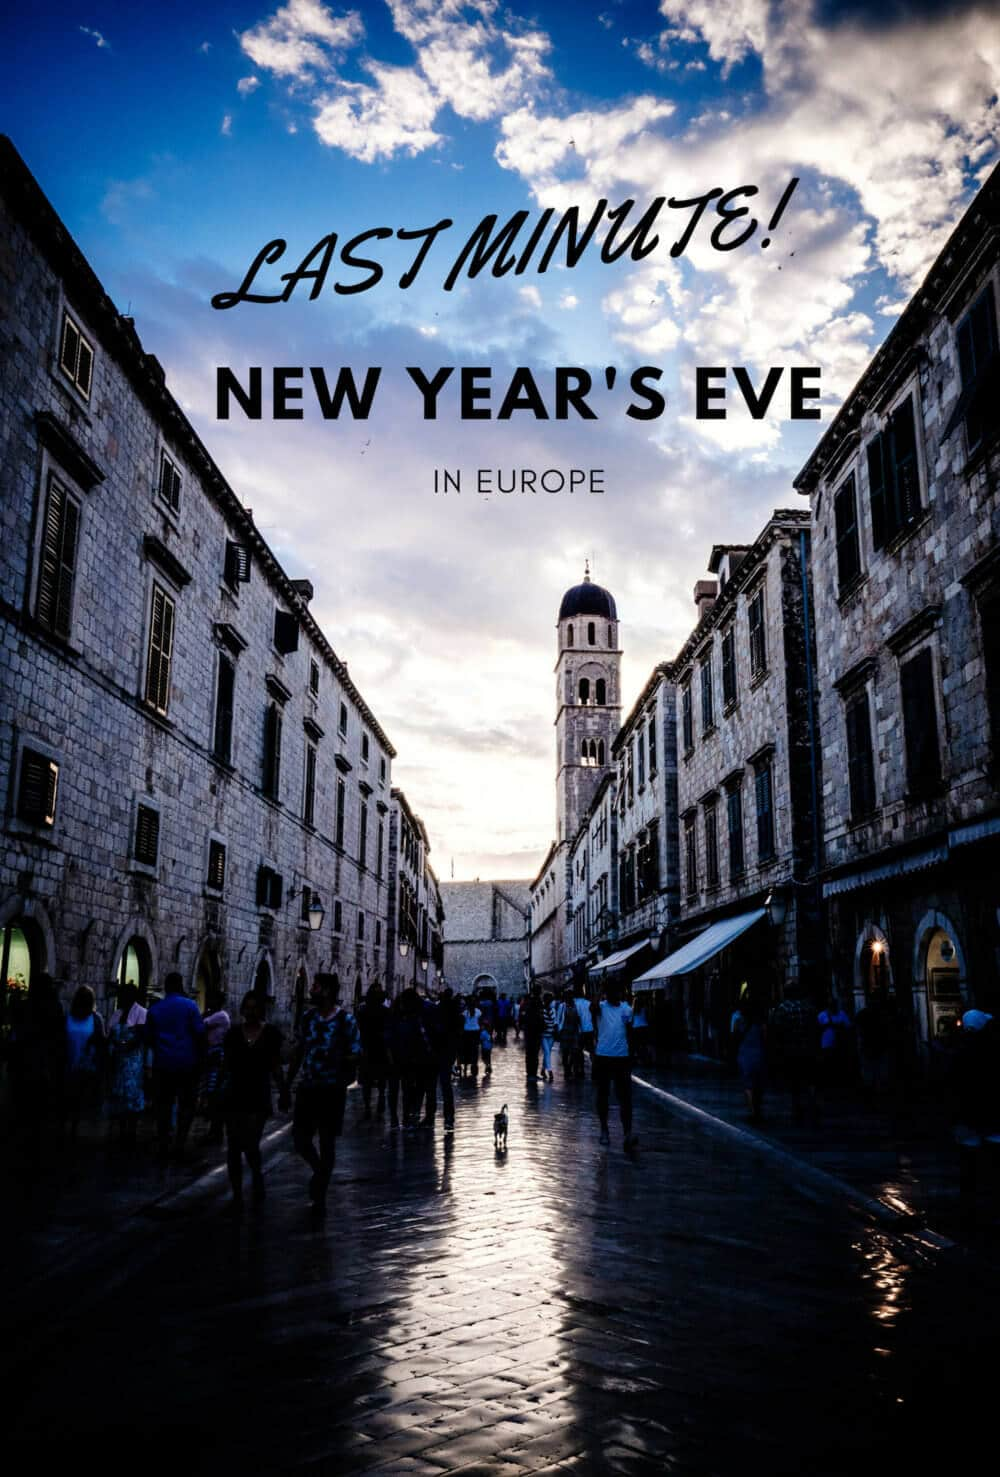 Last Minute New Year's Eve in Europe